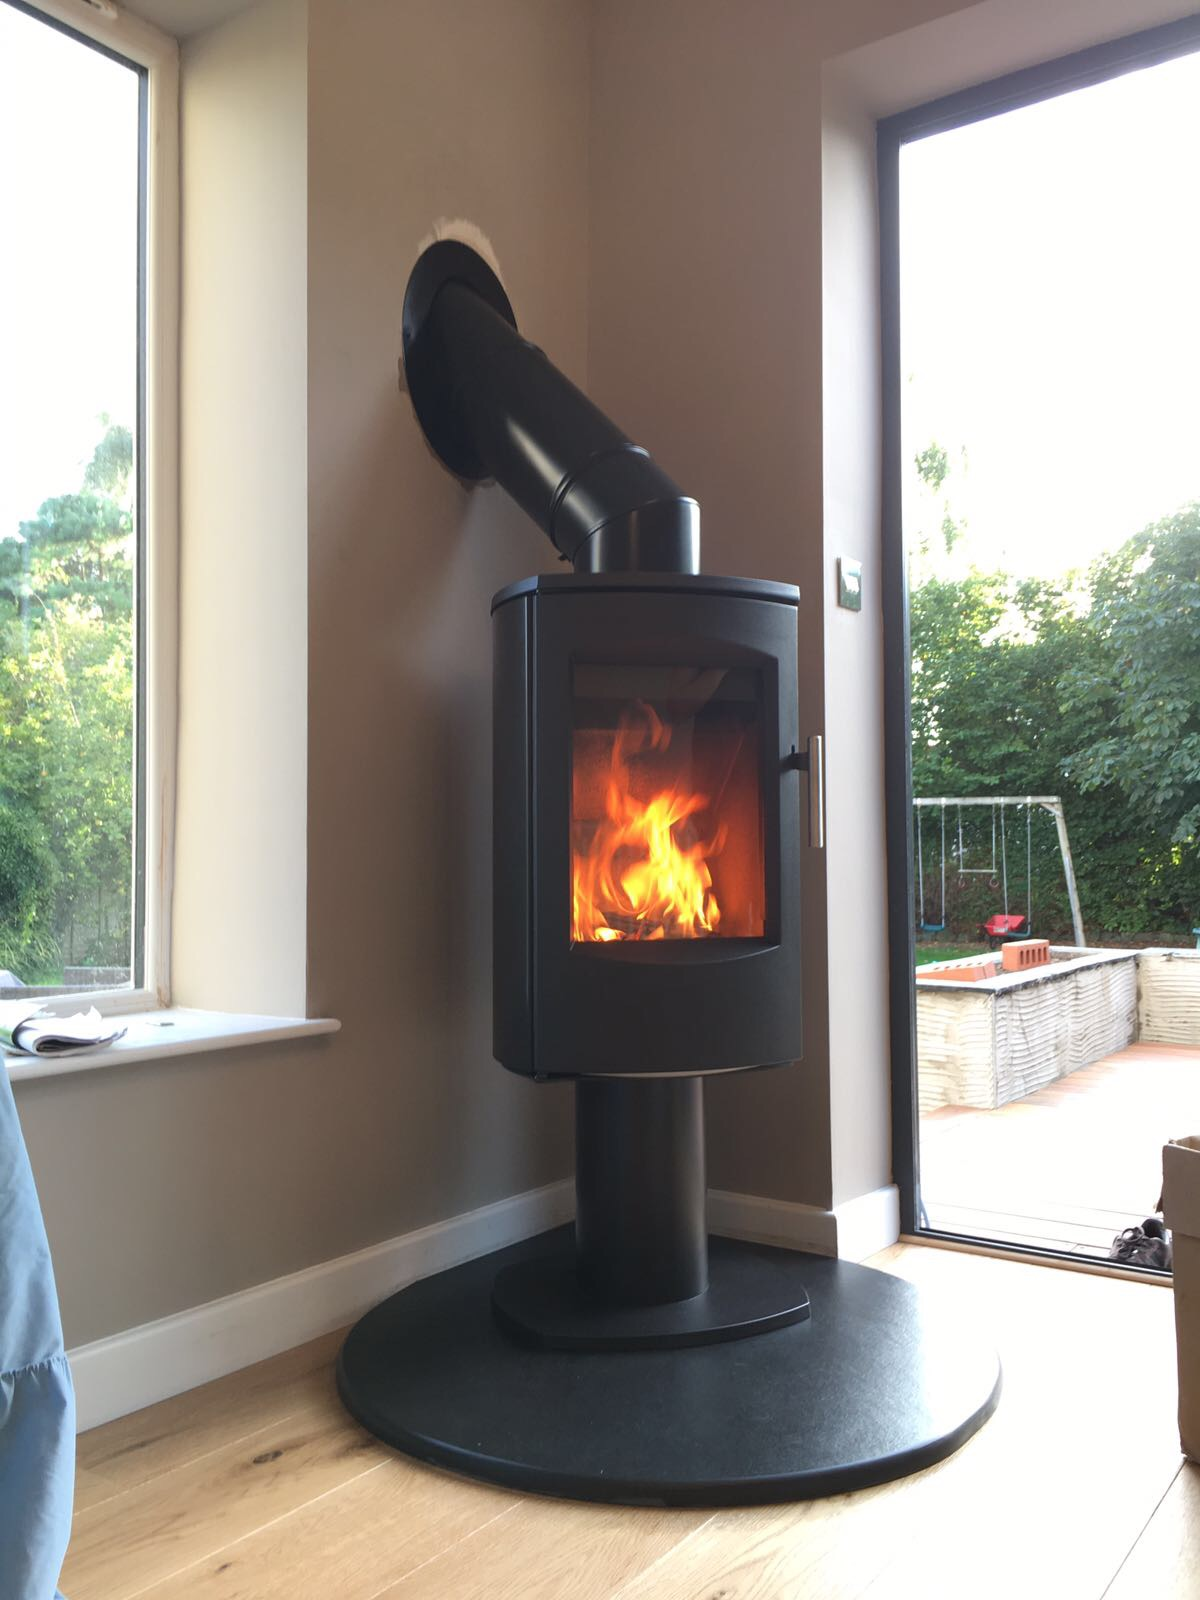 Stove Installation In A Property With No Chimney